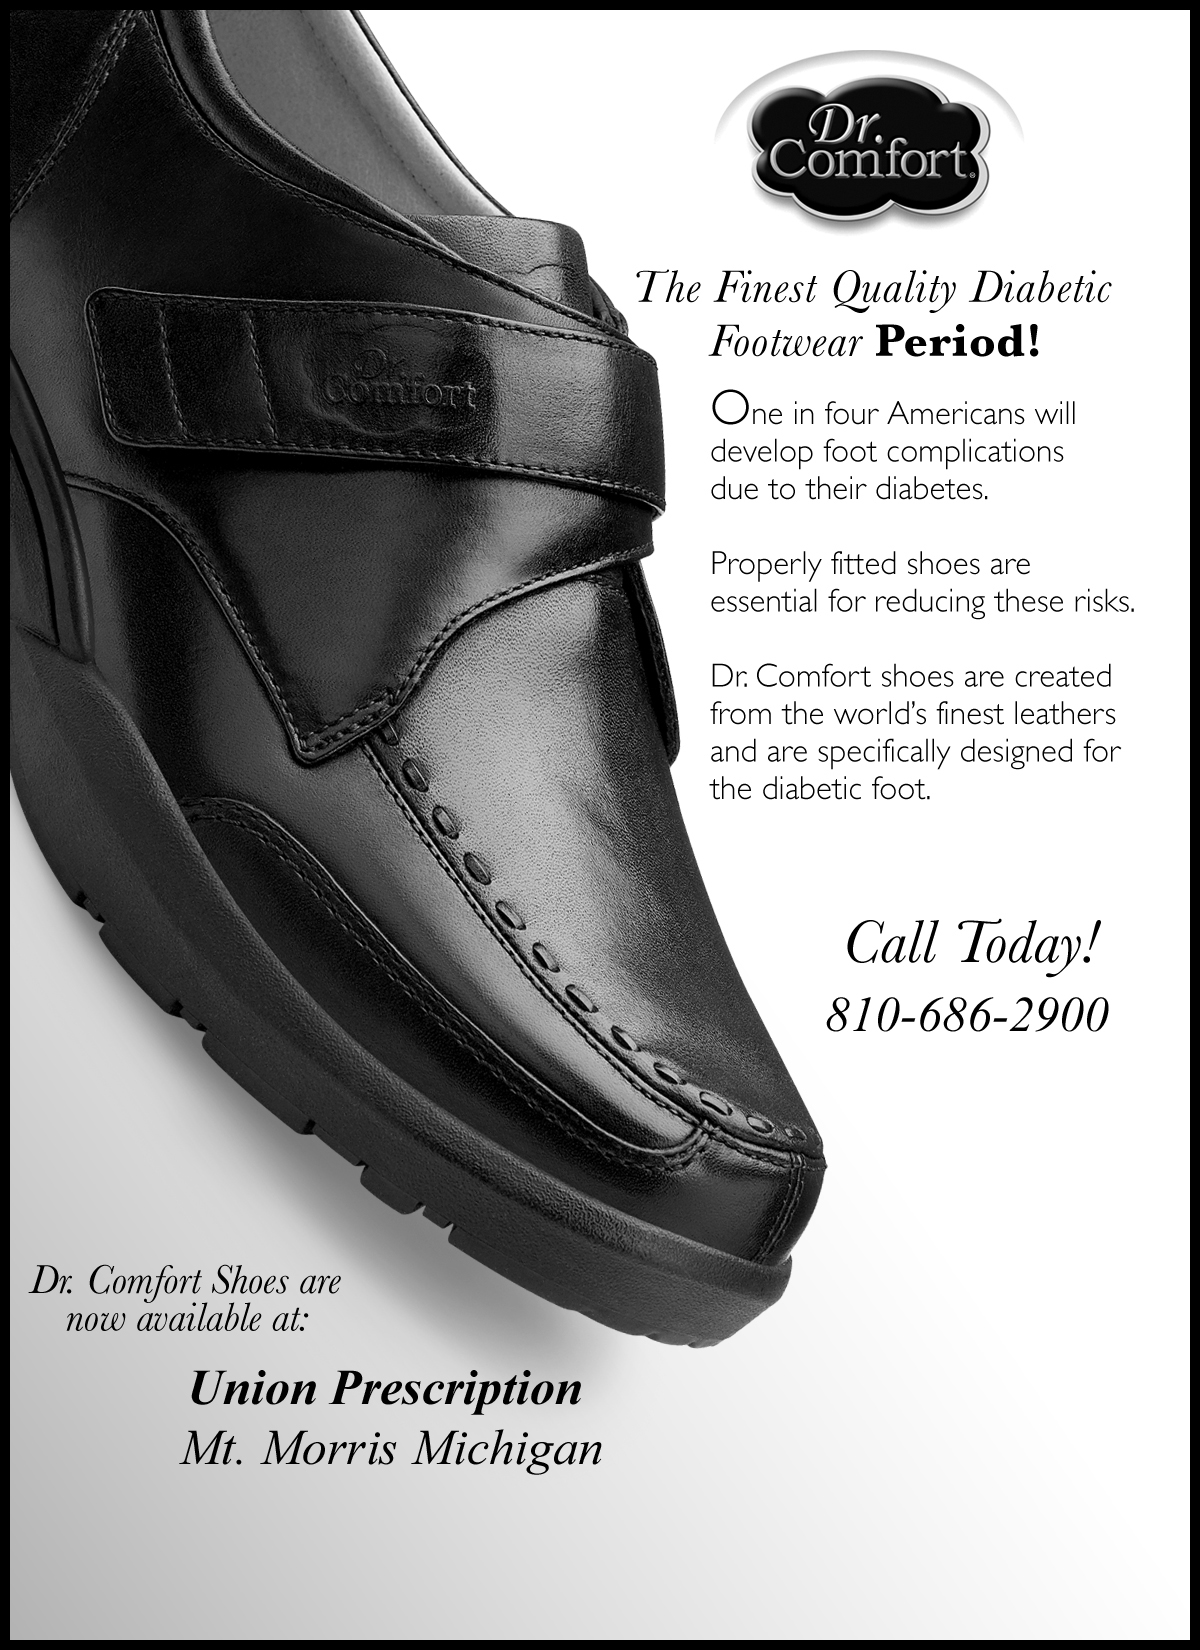 footwear tan brands comfort diabetic feet simply index online drc socks dr from kristin shoes comforter